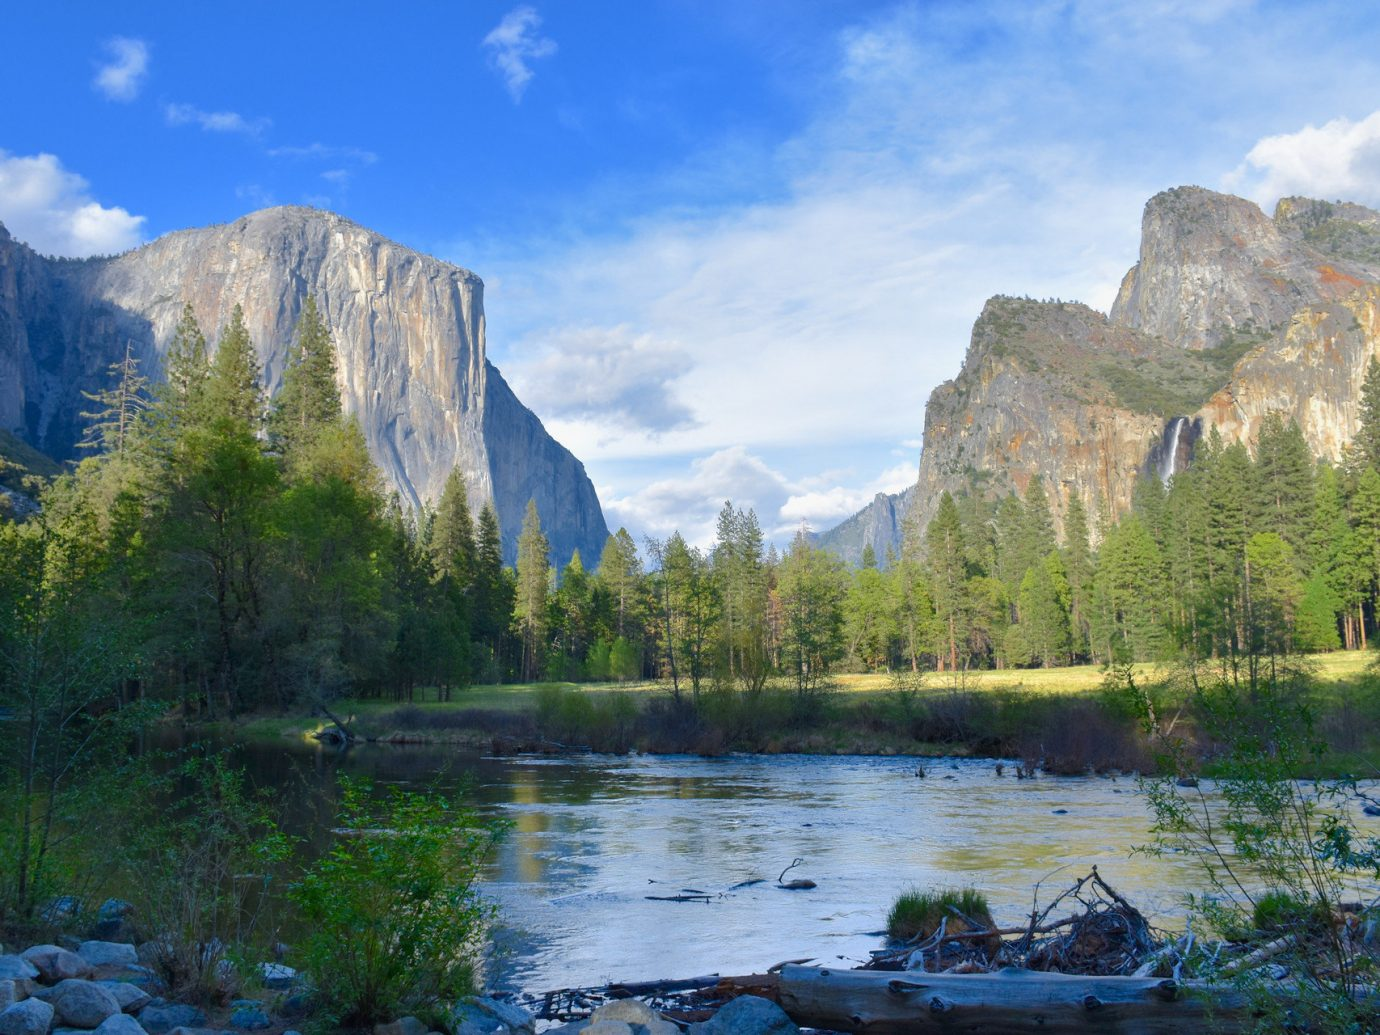 Health + Wellness Trip Ideas mountain sky outdoor Nature mountainous landforms River wilderness landform geographical feature body of water tree Lake reflection mountain range background loch landscape valley park autumn alps national park pond surrounded hillside distance